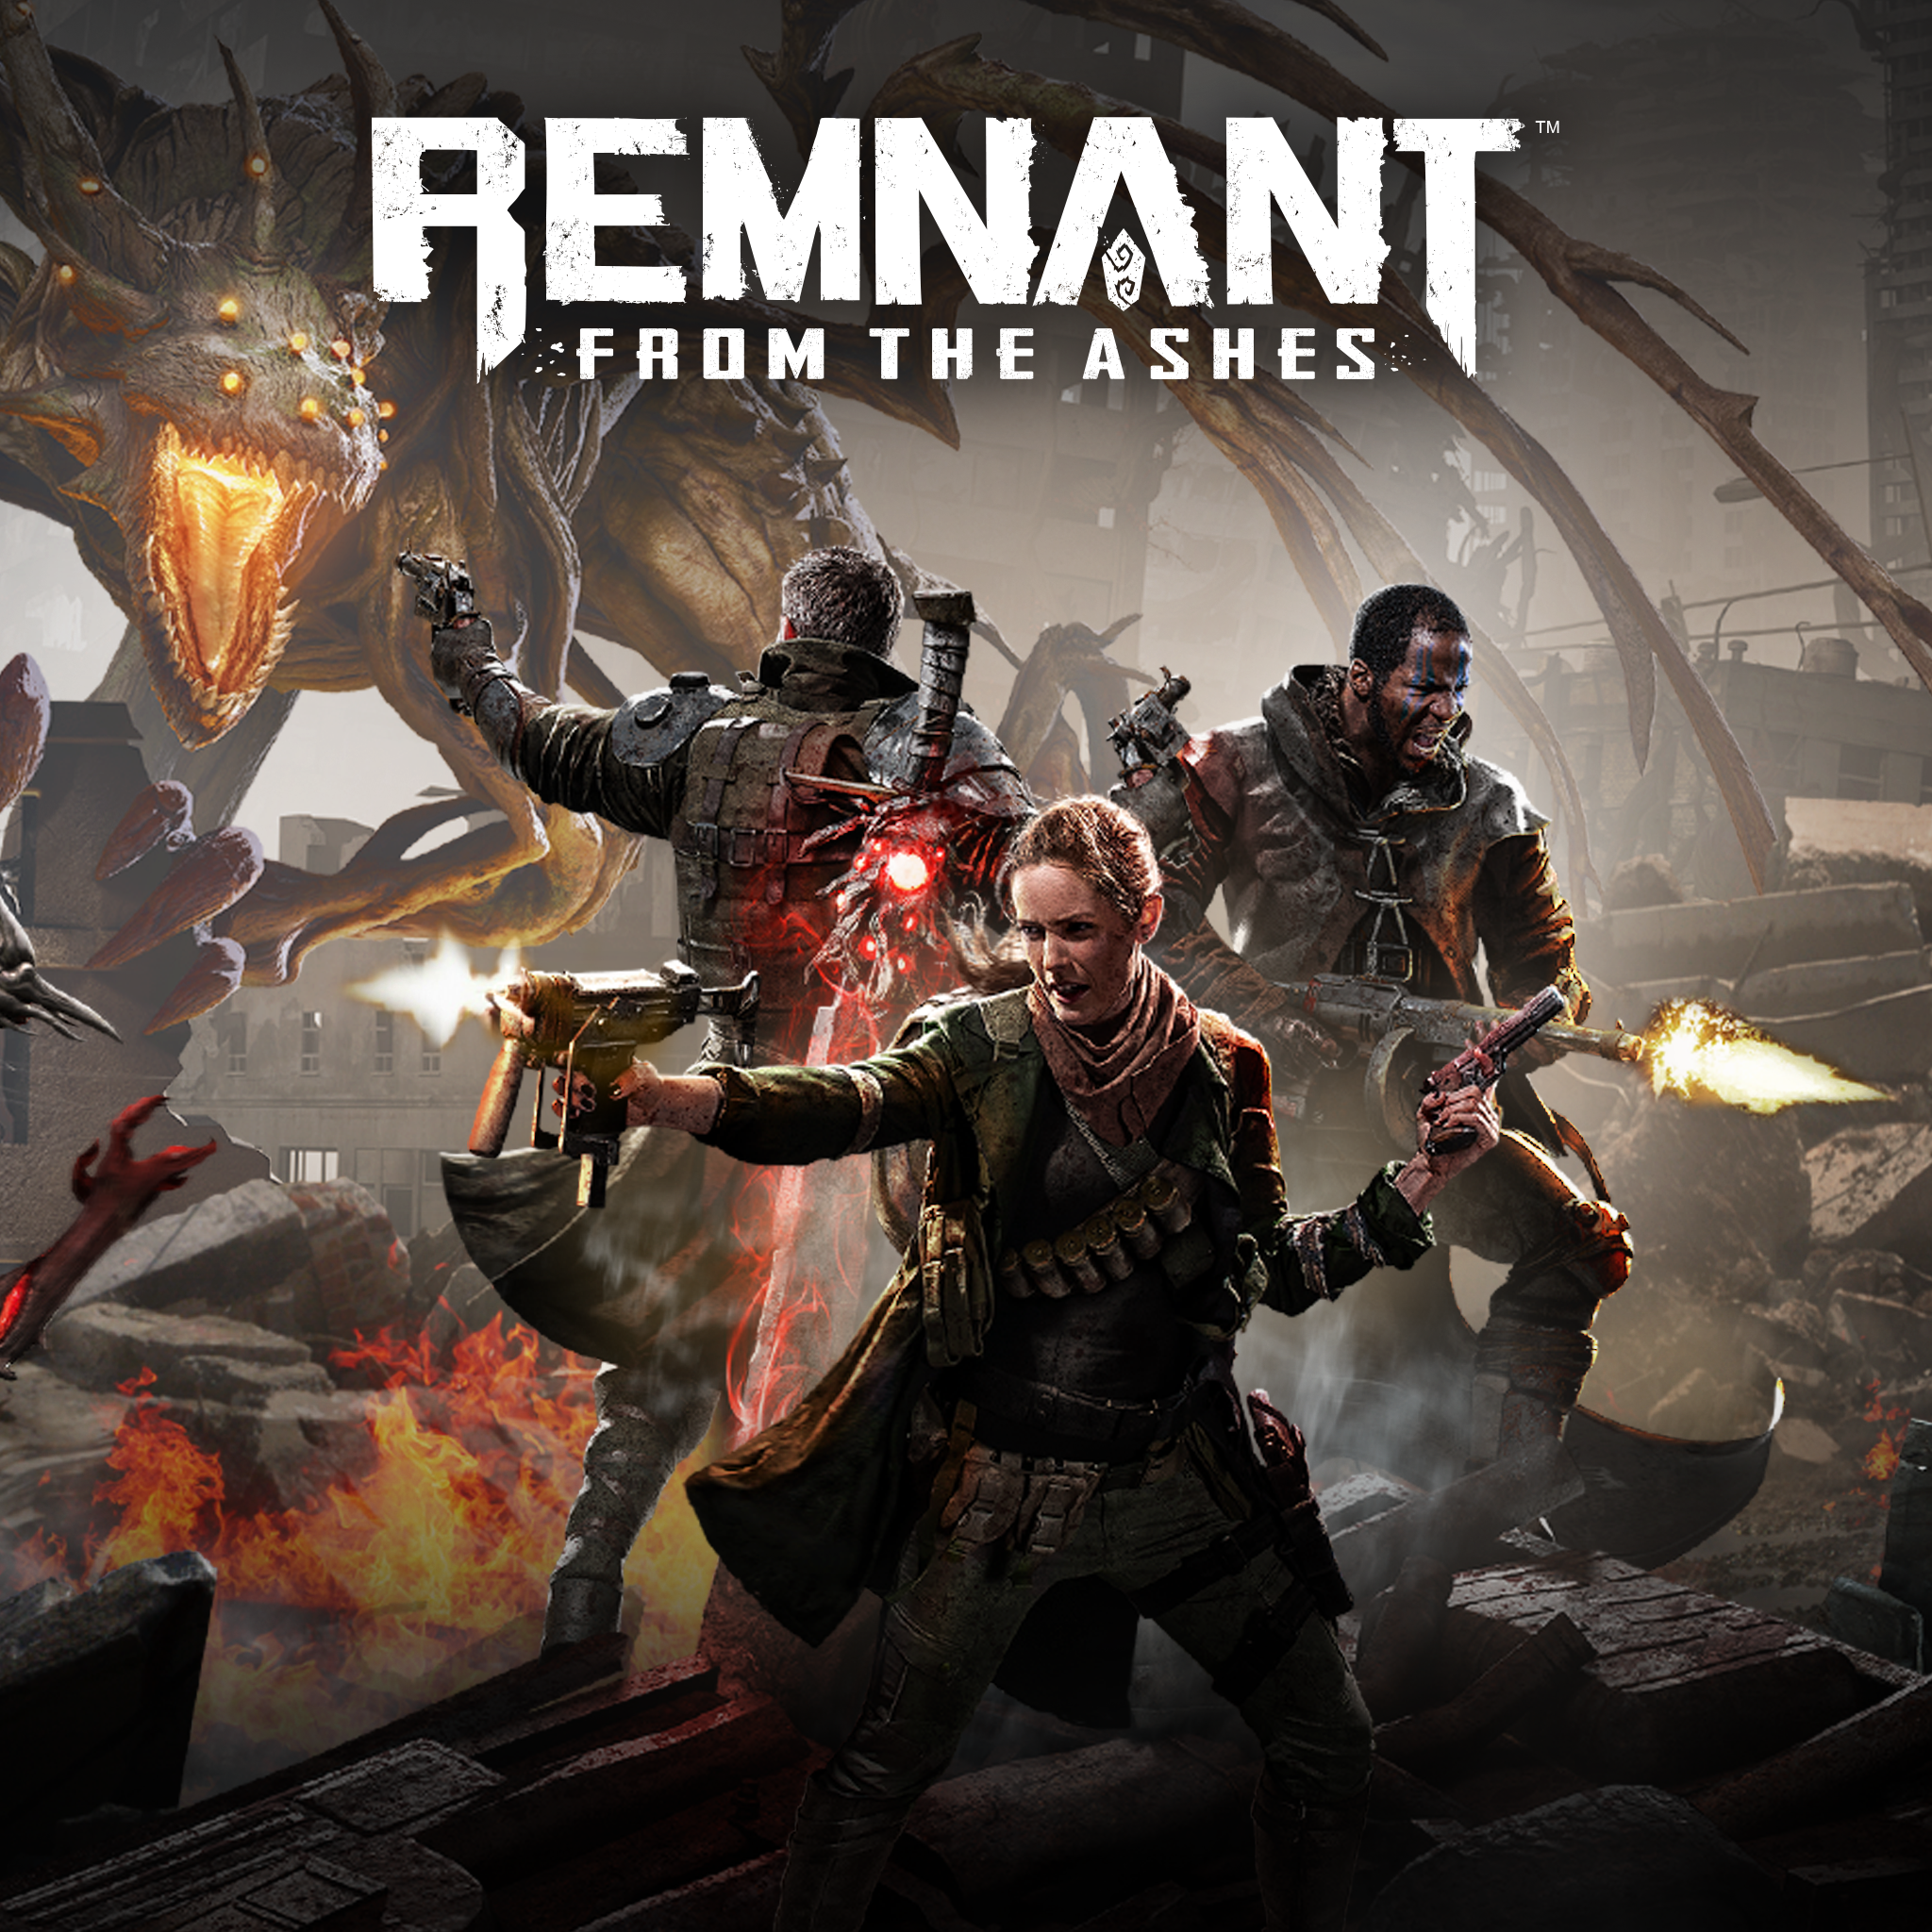 Thumbnail of Remnant: From the Ashes on PS4